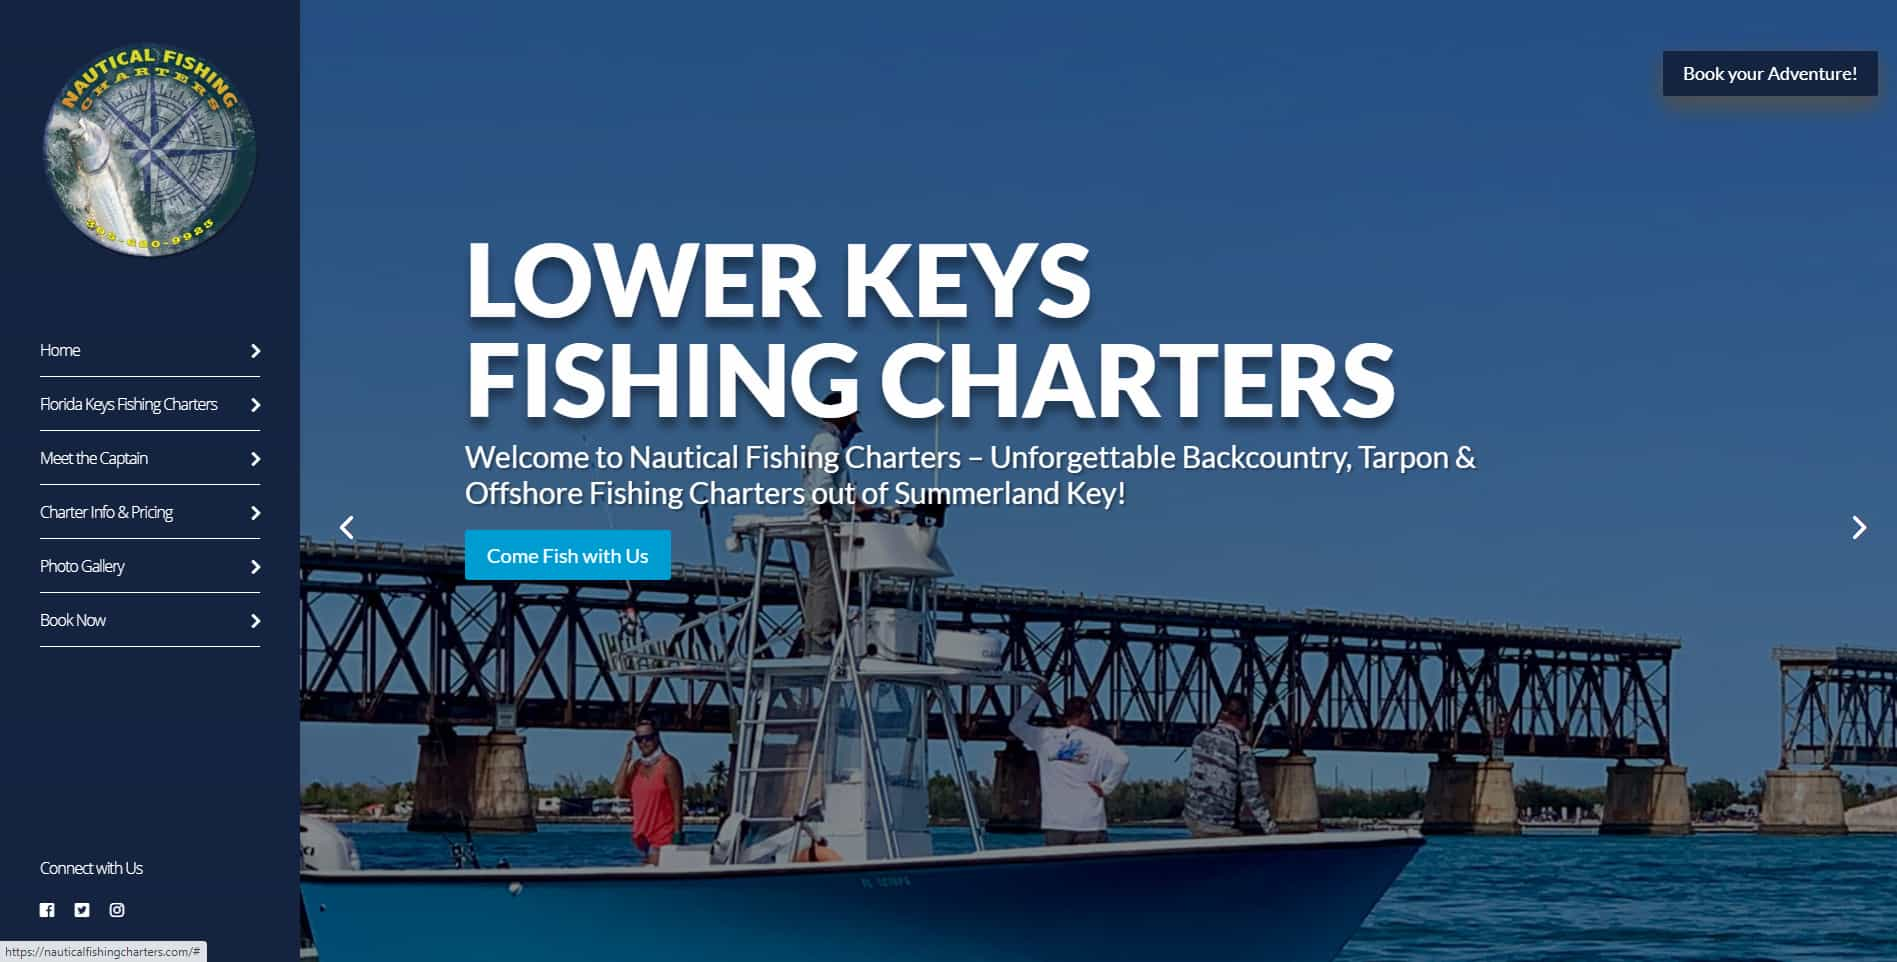 An image of the Nautical Fishing Charters website built by Not Fade Away.